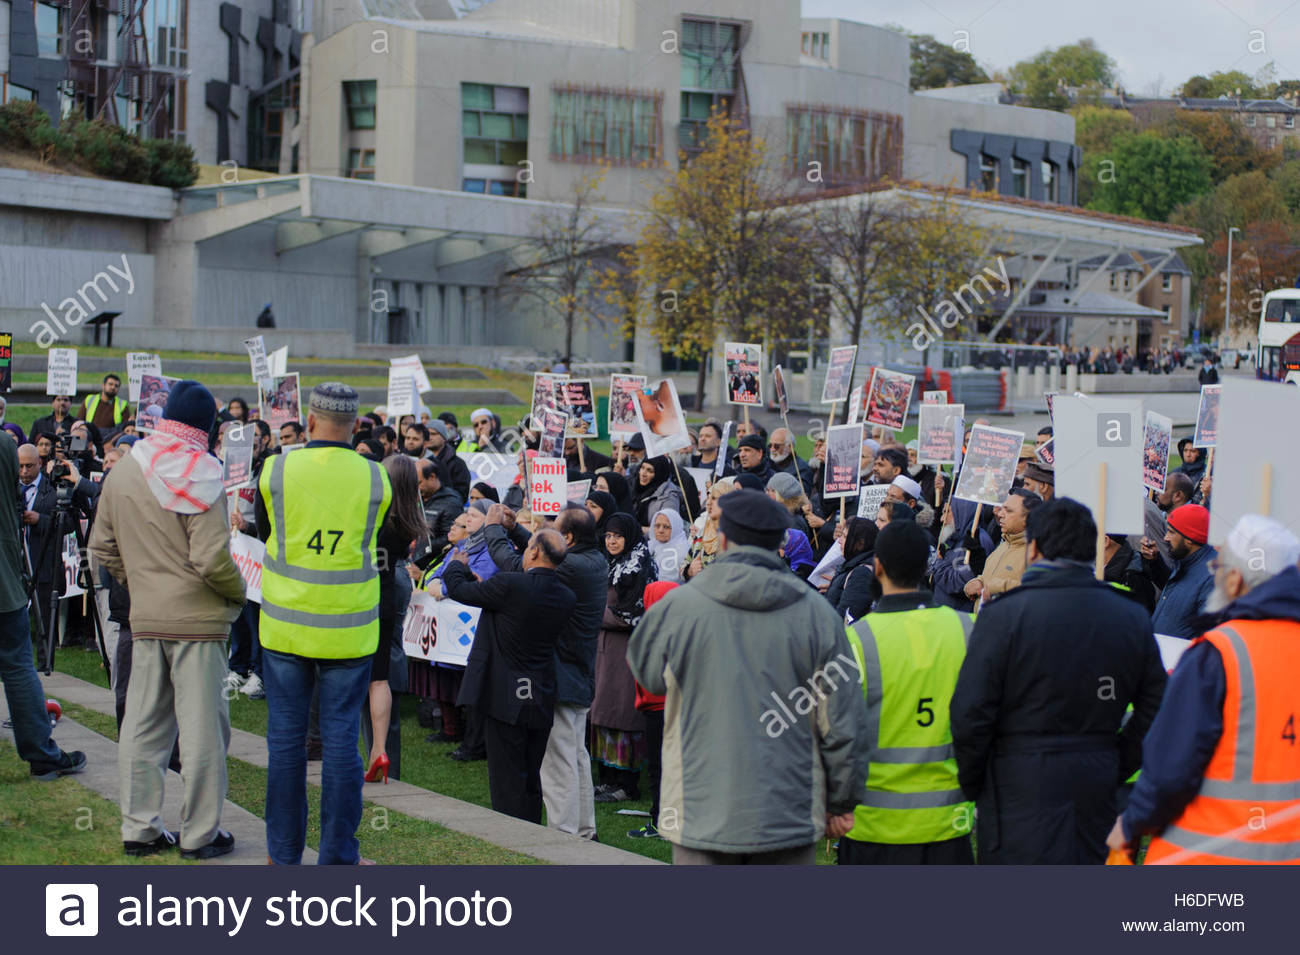 Edinburgh, UK. 27 October, 2016. Large crowd gathers in front of the Scottish Parliament to protest at the Indian - Stock Image